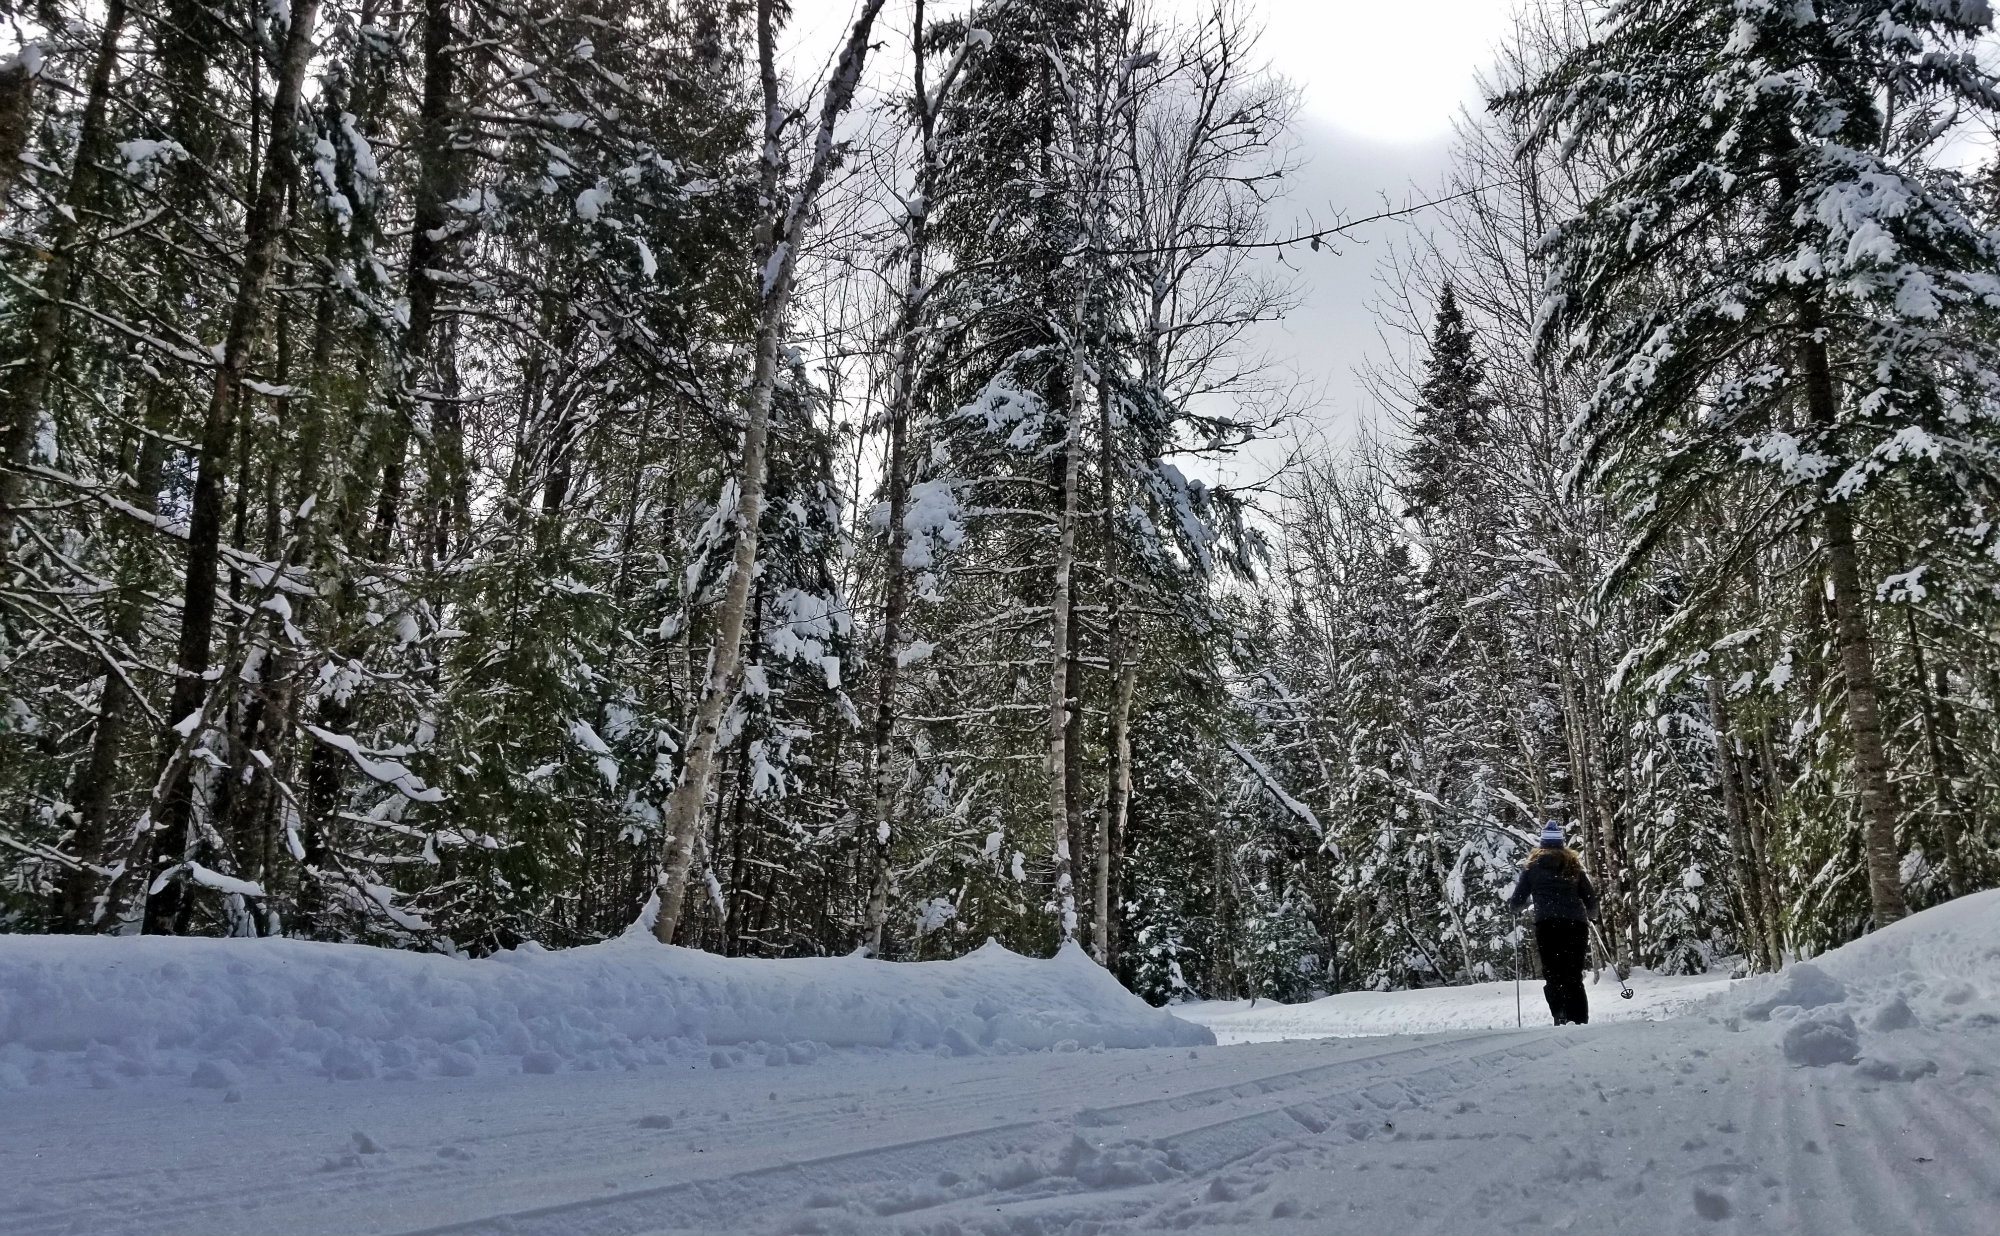 Cross-country skiing perfection at the Fort Kent Outdoor Center